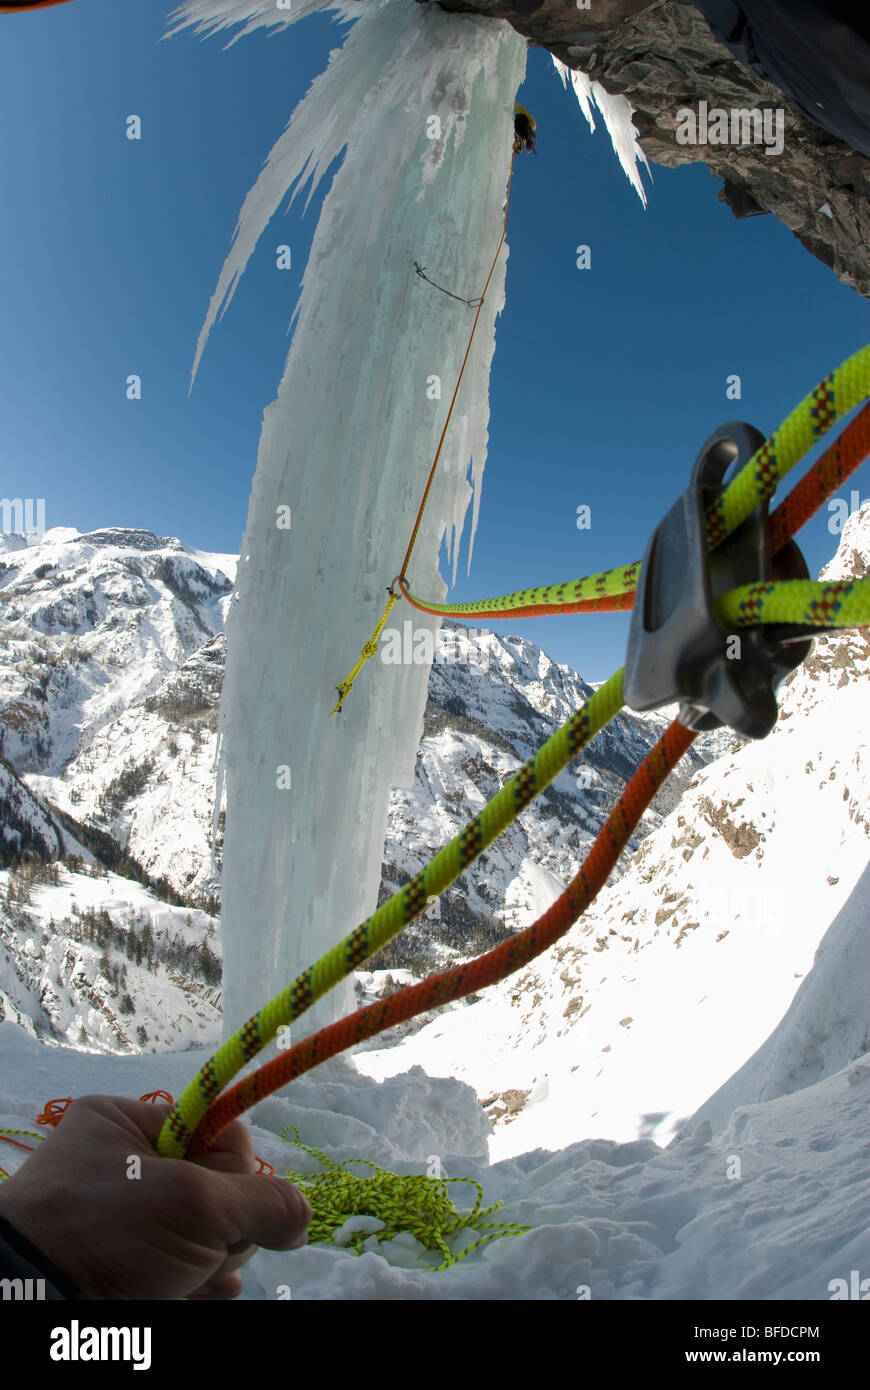 View of climbing rope used by a professional male ice climber as he ascends a frozen waterfall pillar. - Stock Image